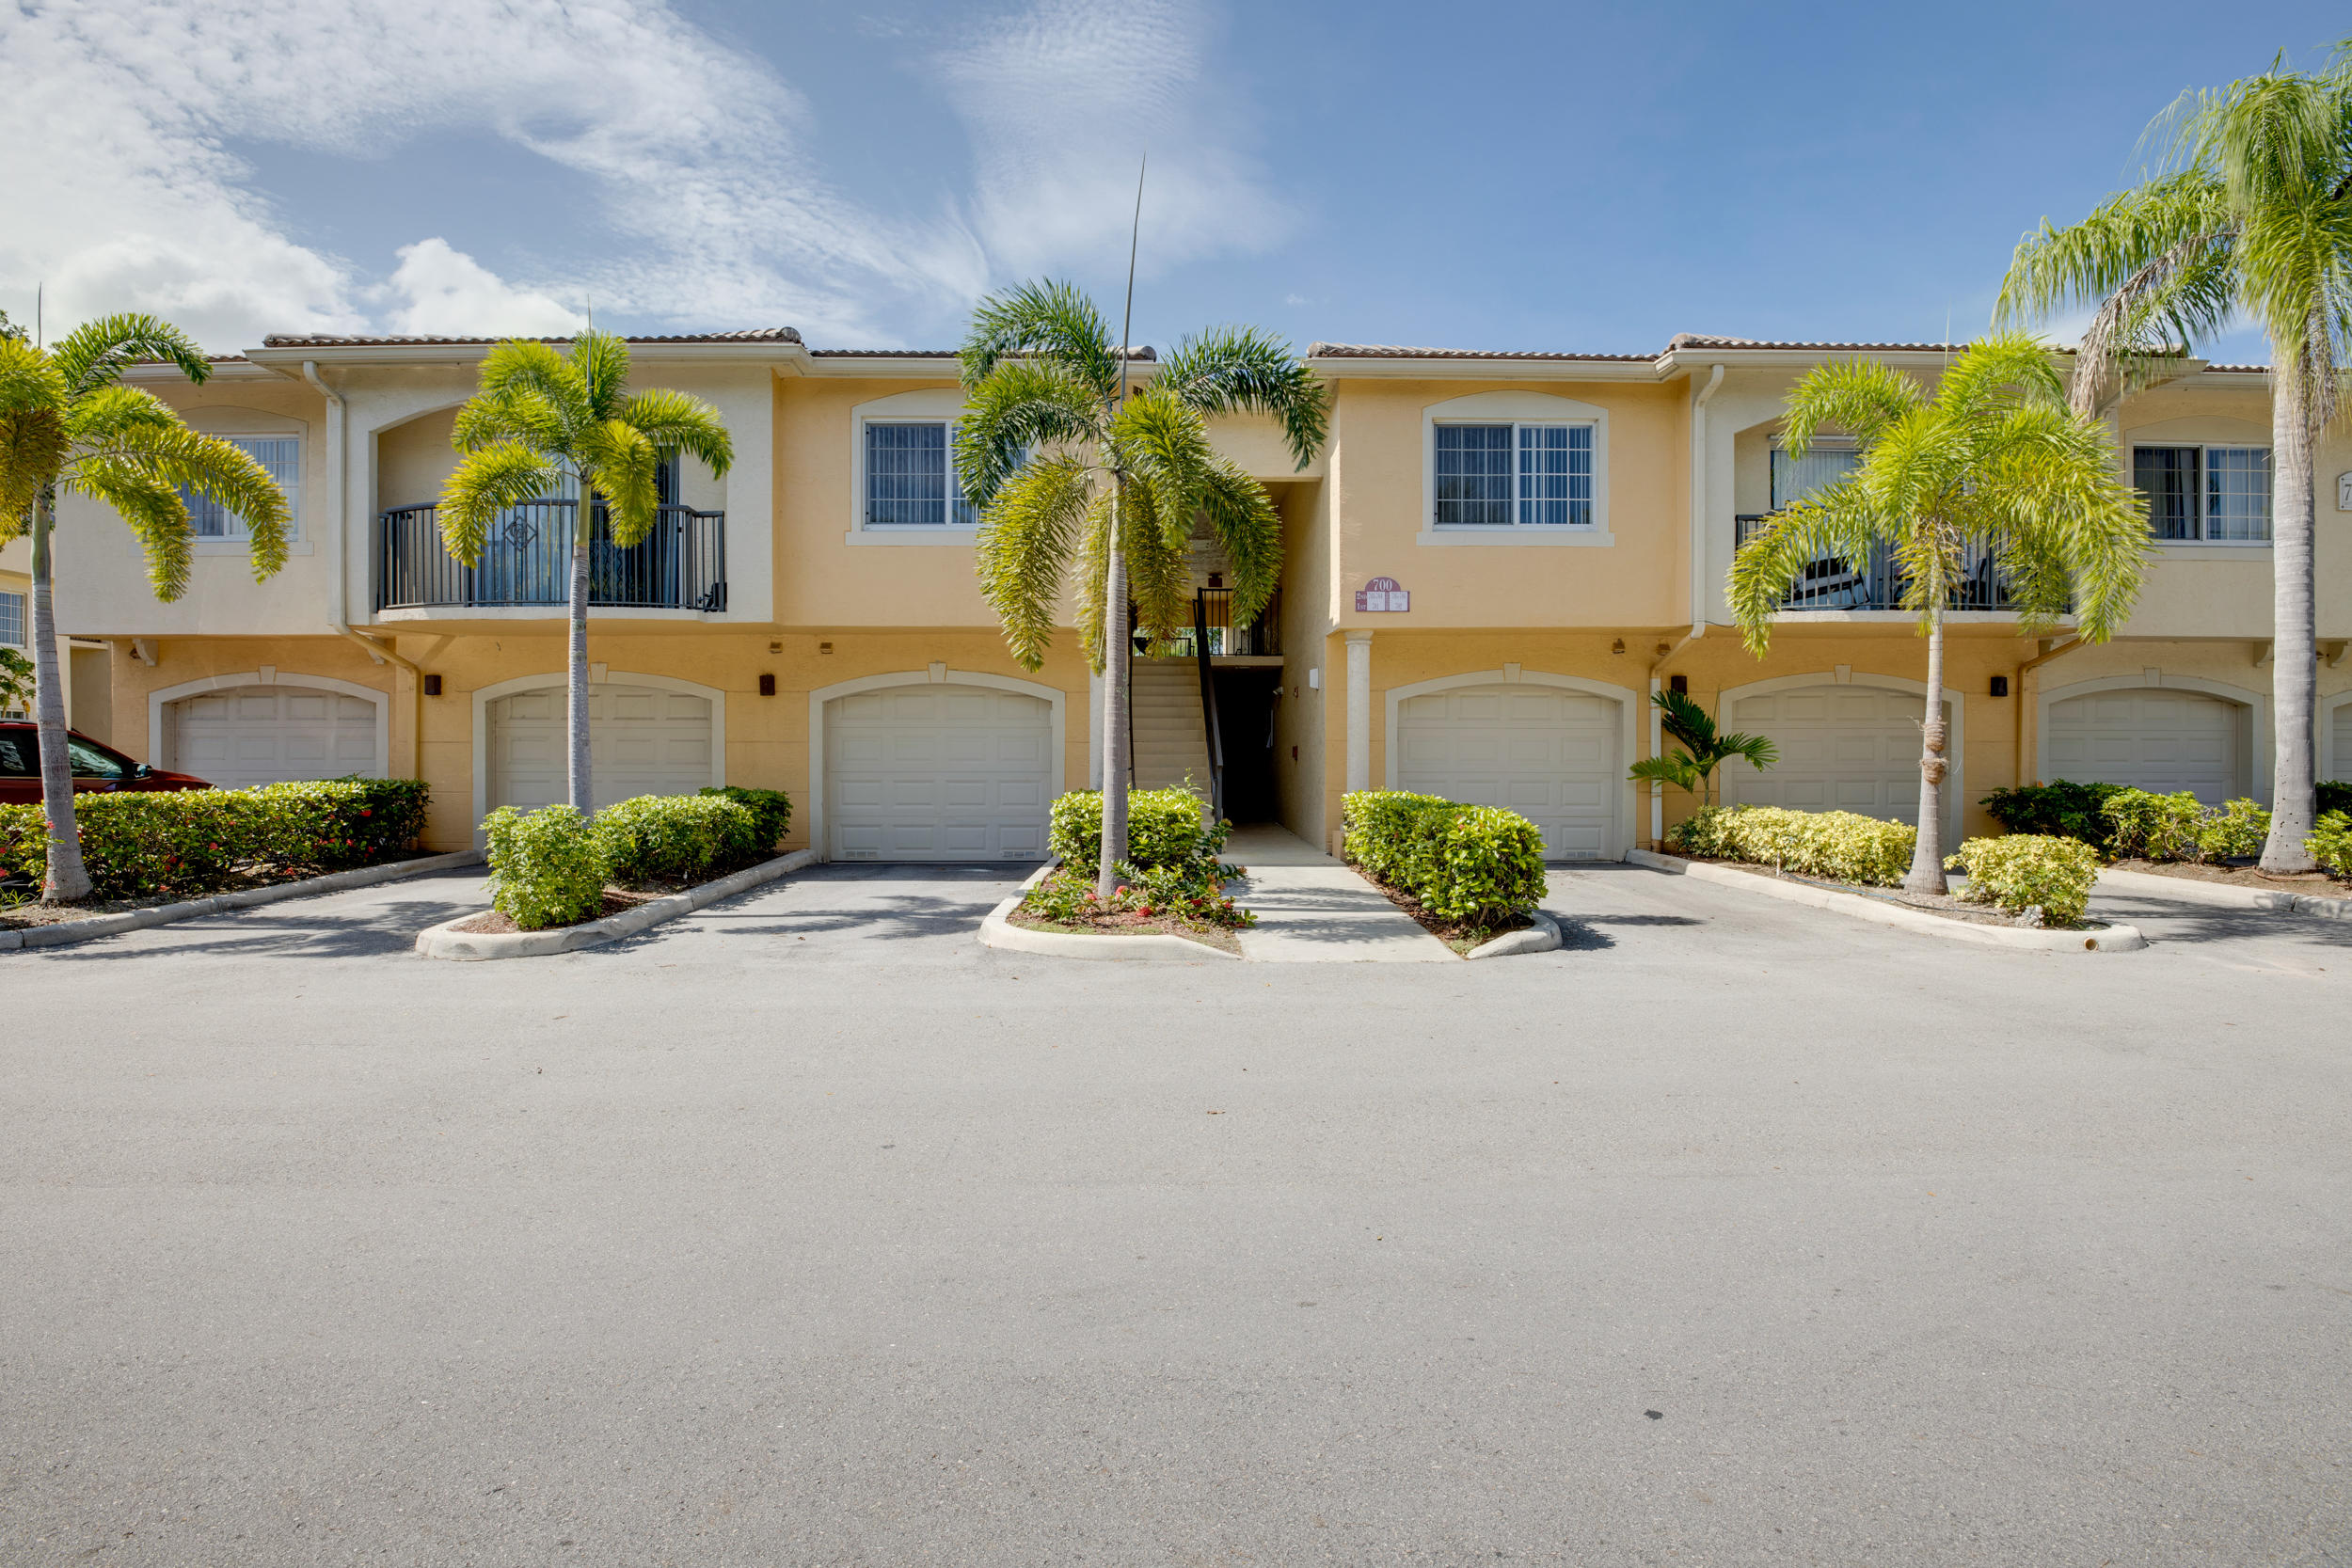 Home for sale in Grand View Crestwood Royal Palm Beach Florida